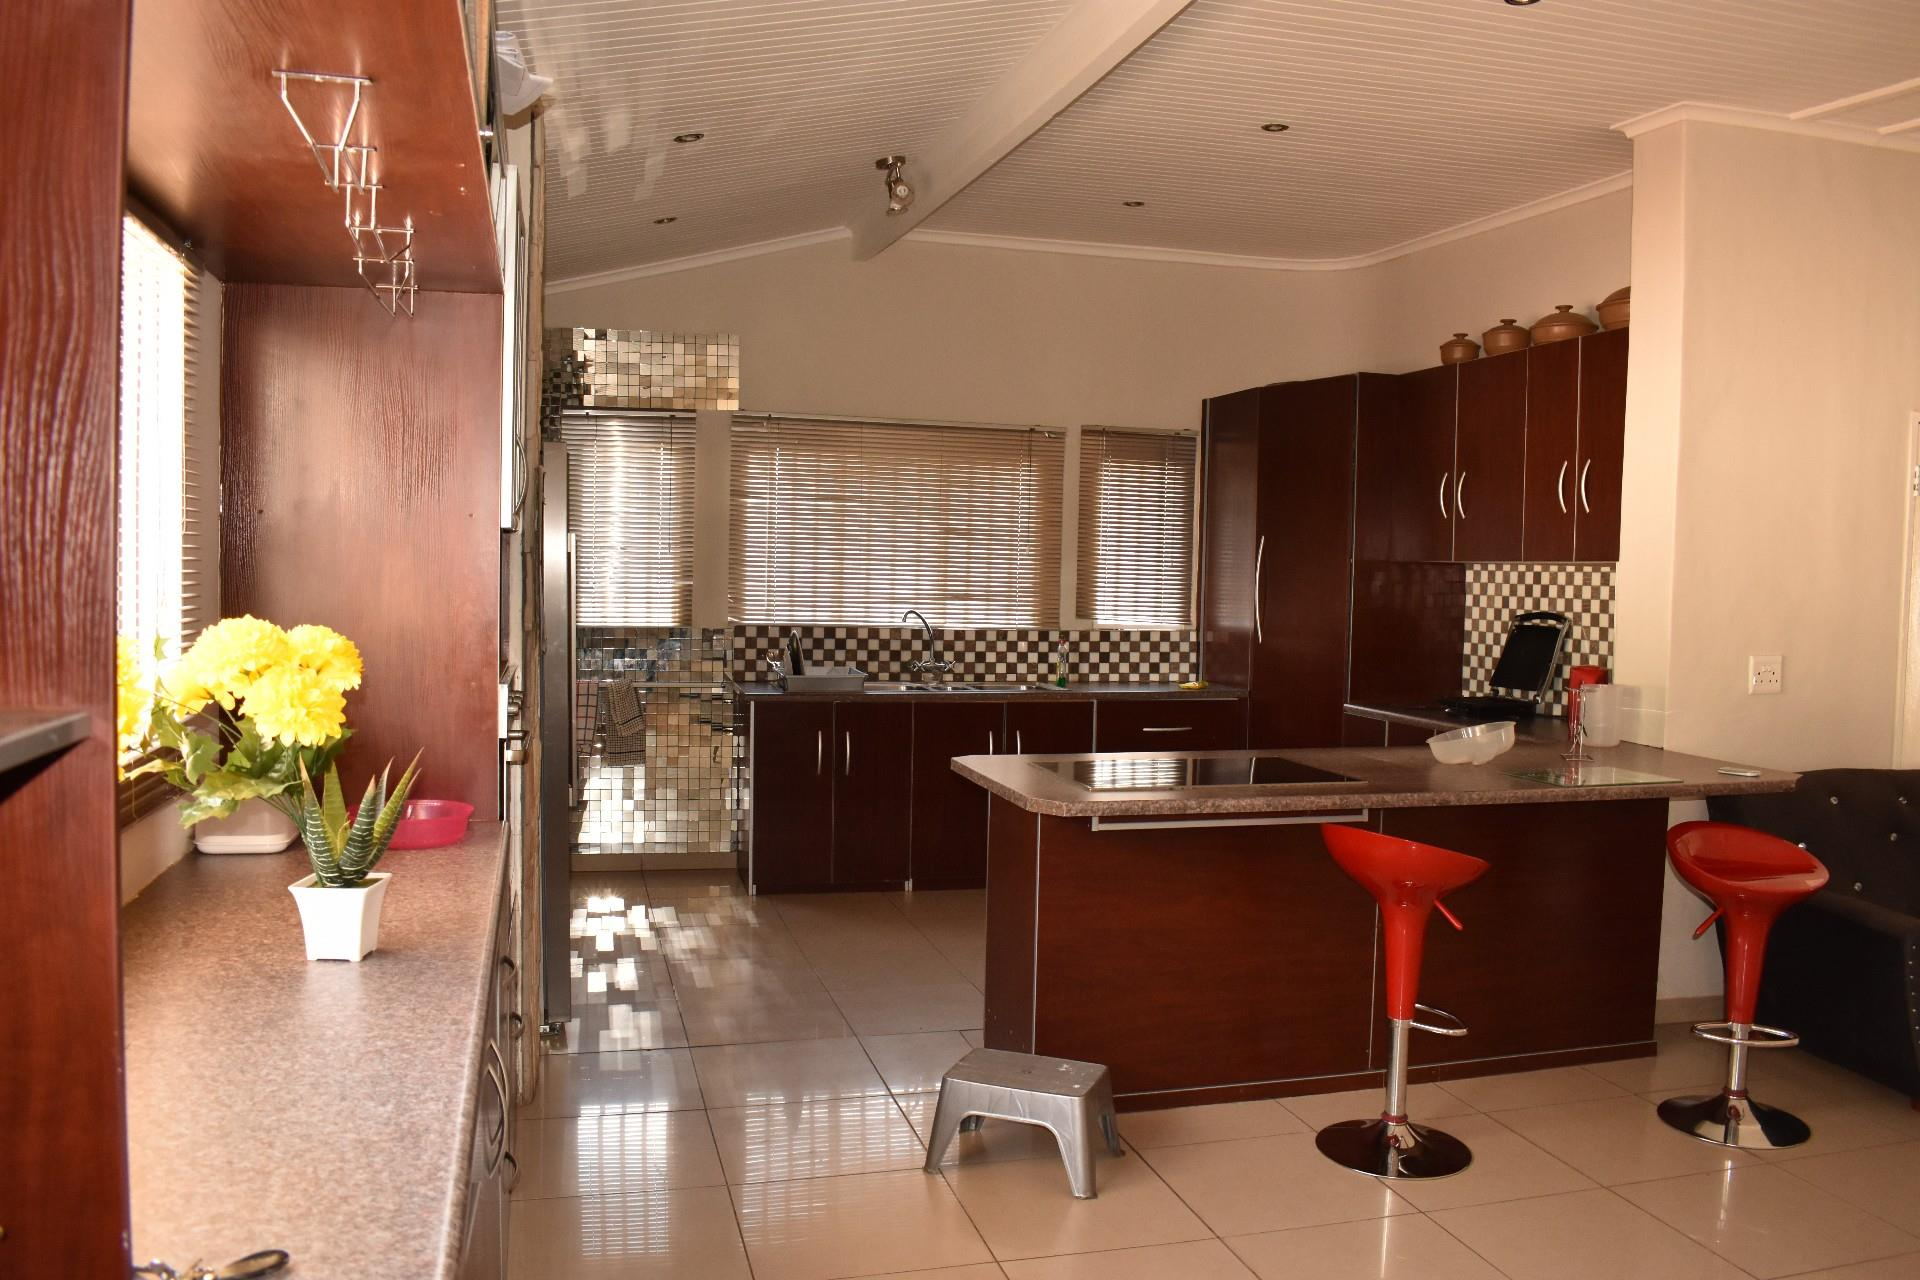 5 Bedroom House For Sale in Cimbebasia